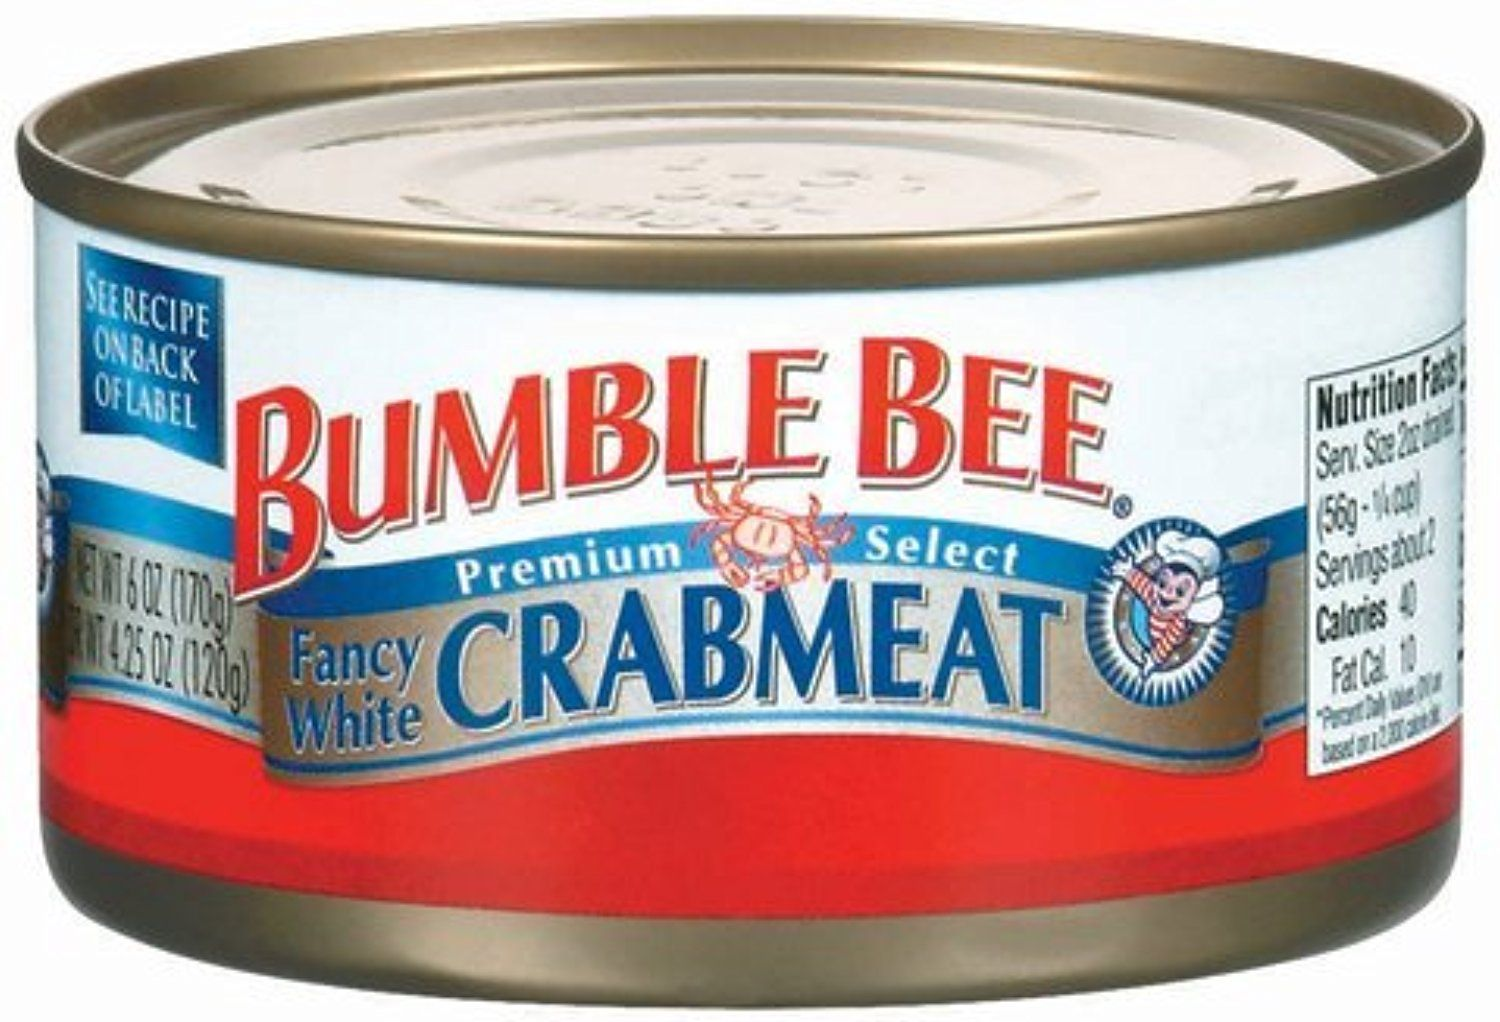 Bumble Bee Fancy White Crabmeat, 6 oz by Bumble Bee -- Awesome ...